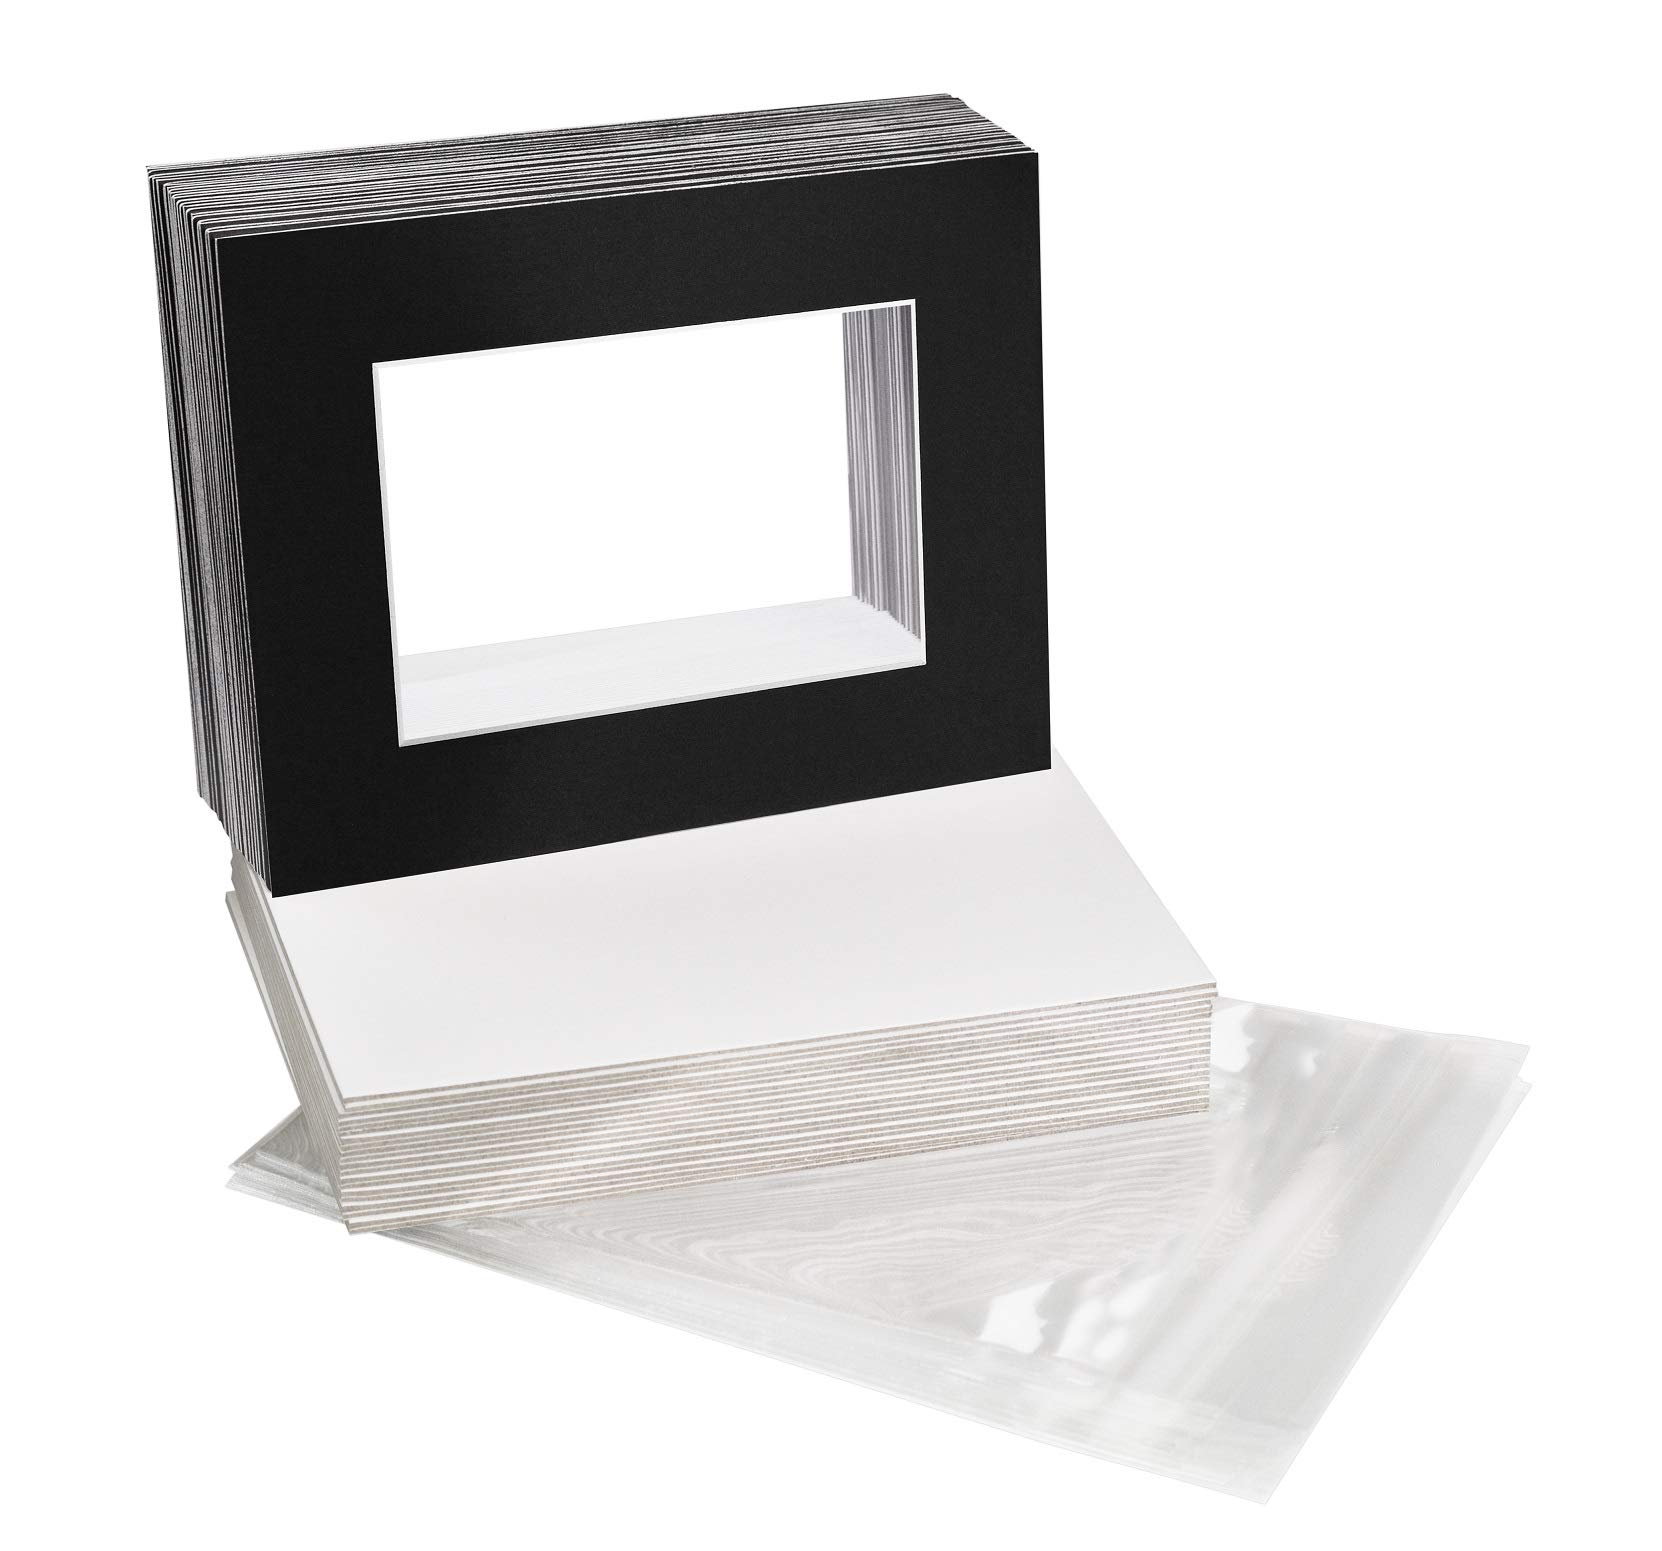 Golden State Art, Acid-Free Pre-Cut 8x10 Black Picture Mat Sets. Includes Pack of 25 White Core Bevel Cut Mats for 5x7 Photos, 25 Backing Boards and 25 Crystal Clear Plastic Sleeves Bags by Golden State Art